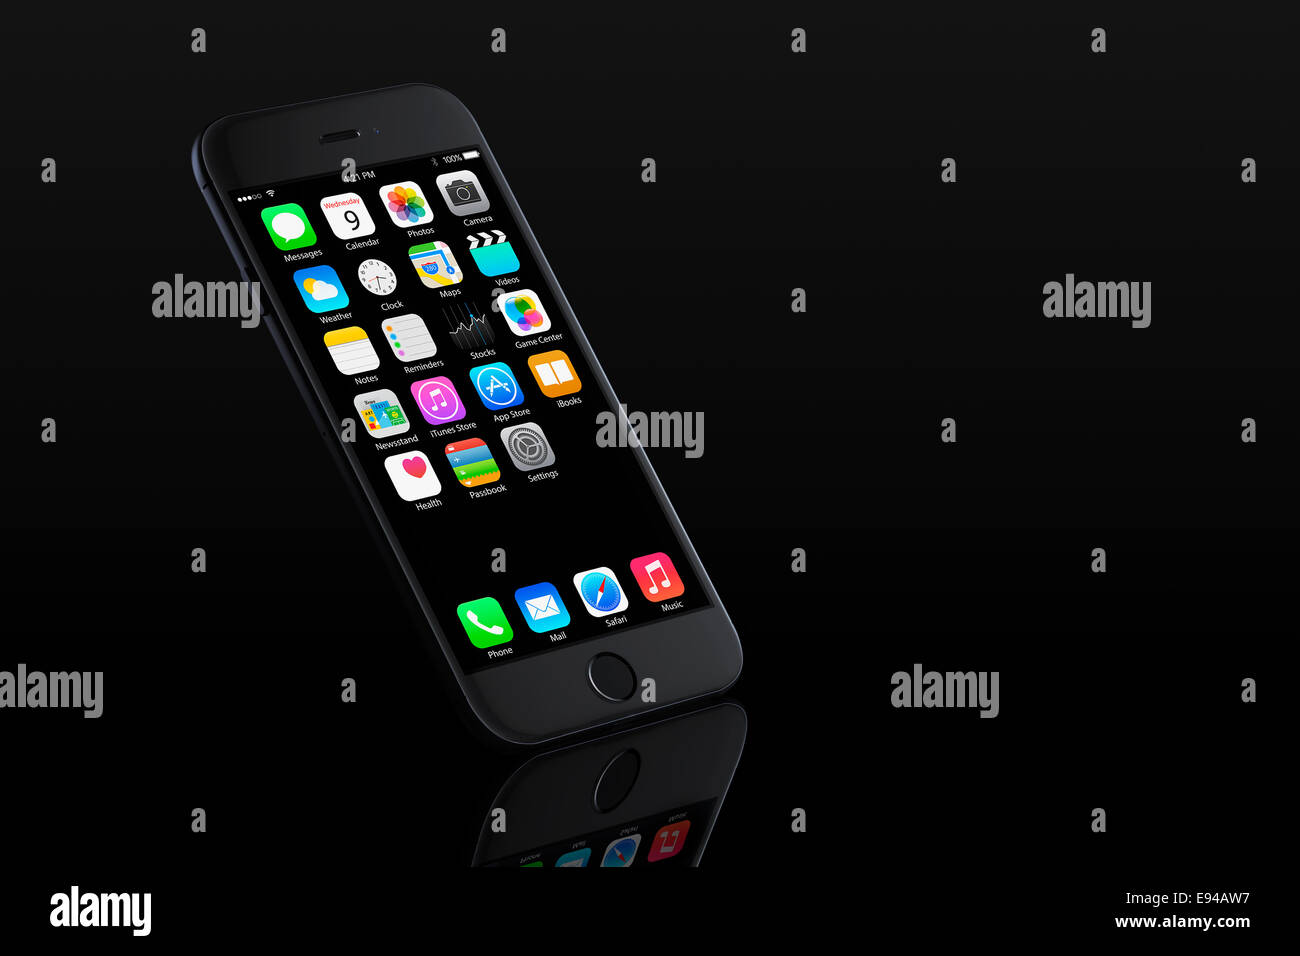 Digitally generated image of cell phone, new iphone 6 space gray with apps (ios 8), reflected. - Stock Image